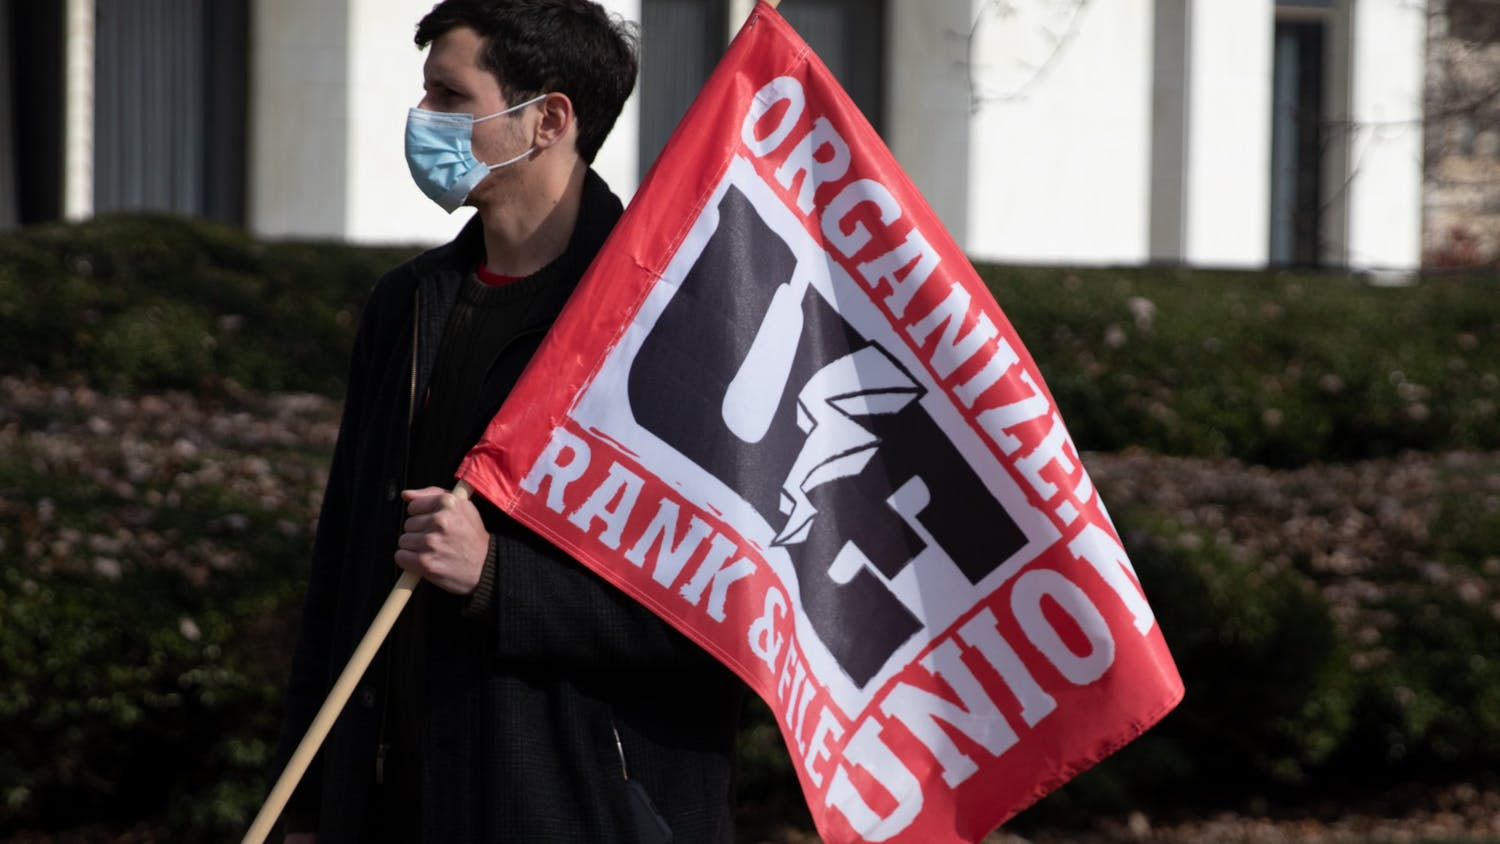 Will Raby, a first-year graduate worker in UNC's department of history, holds a flag at the UE150 rally at the NC legistative builiding, January 14, 2021. UE150 was calling for an improvement to working conditions across the UNC system as the spring semester gets underway.